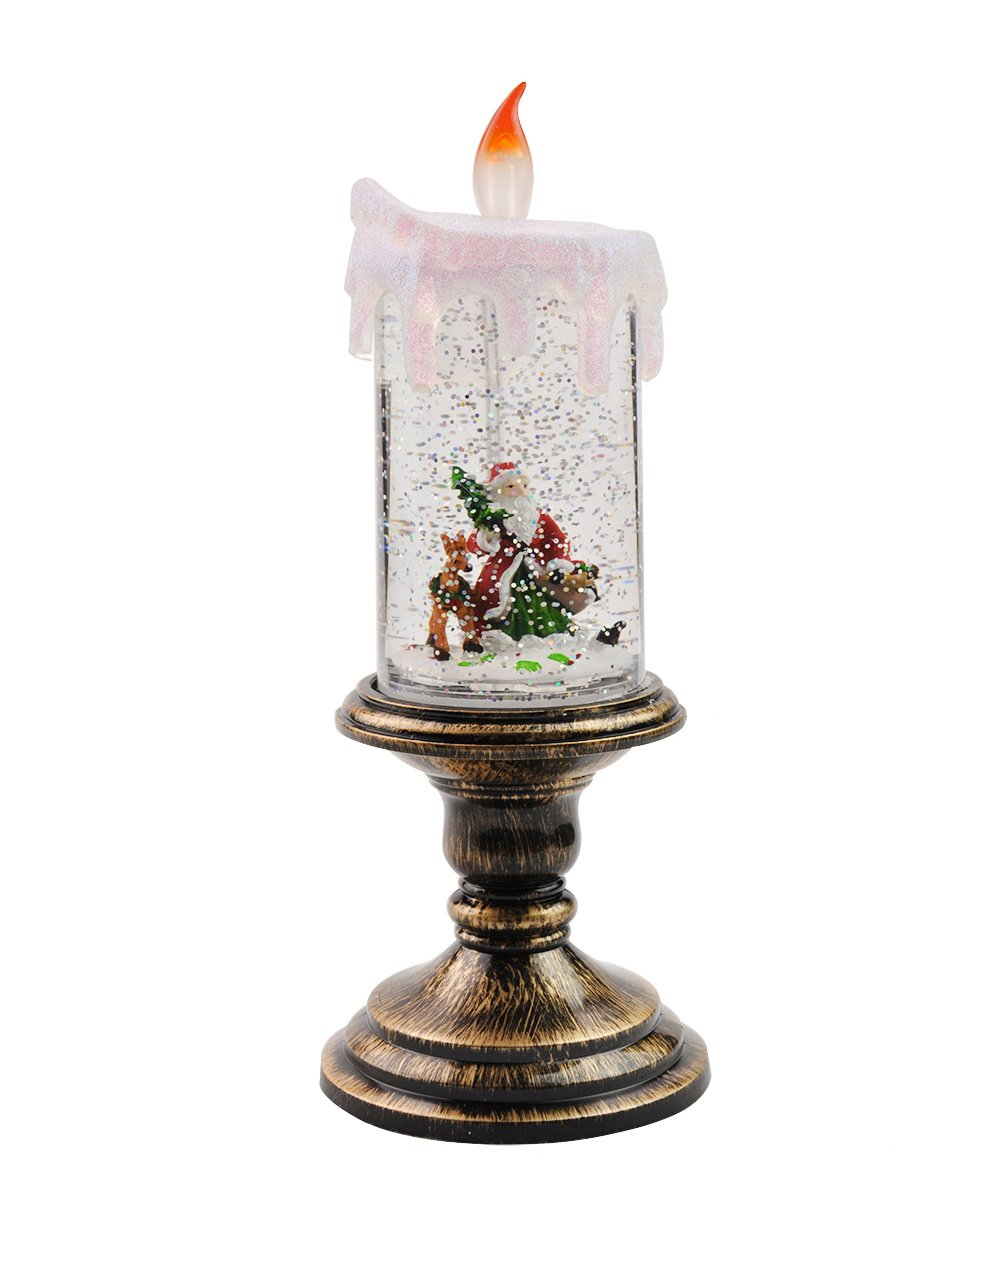 Eldnacele Battery Operated Lighted Flameless Candles Christmas Santa Claus Water Spinning Candles for Home Decoration(Santa Claus)